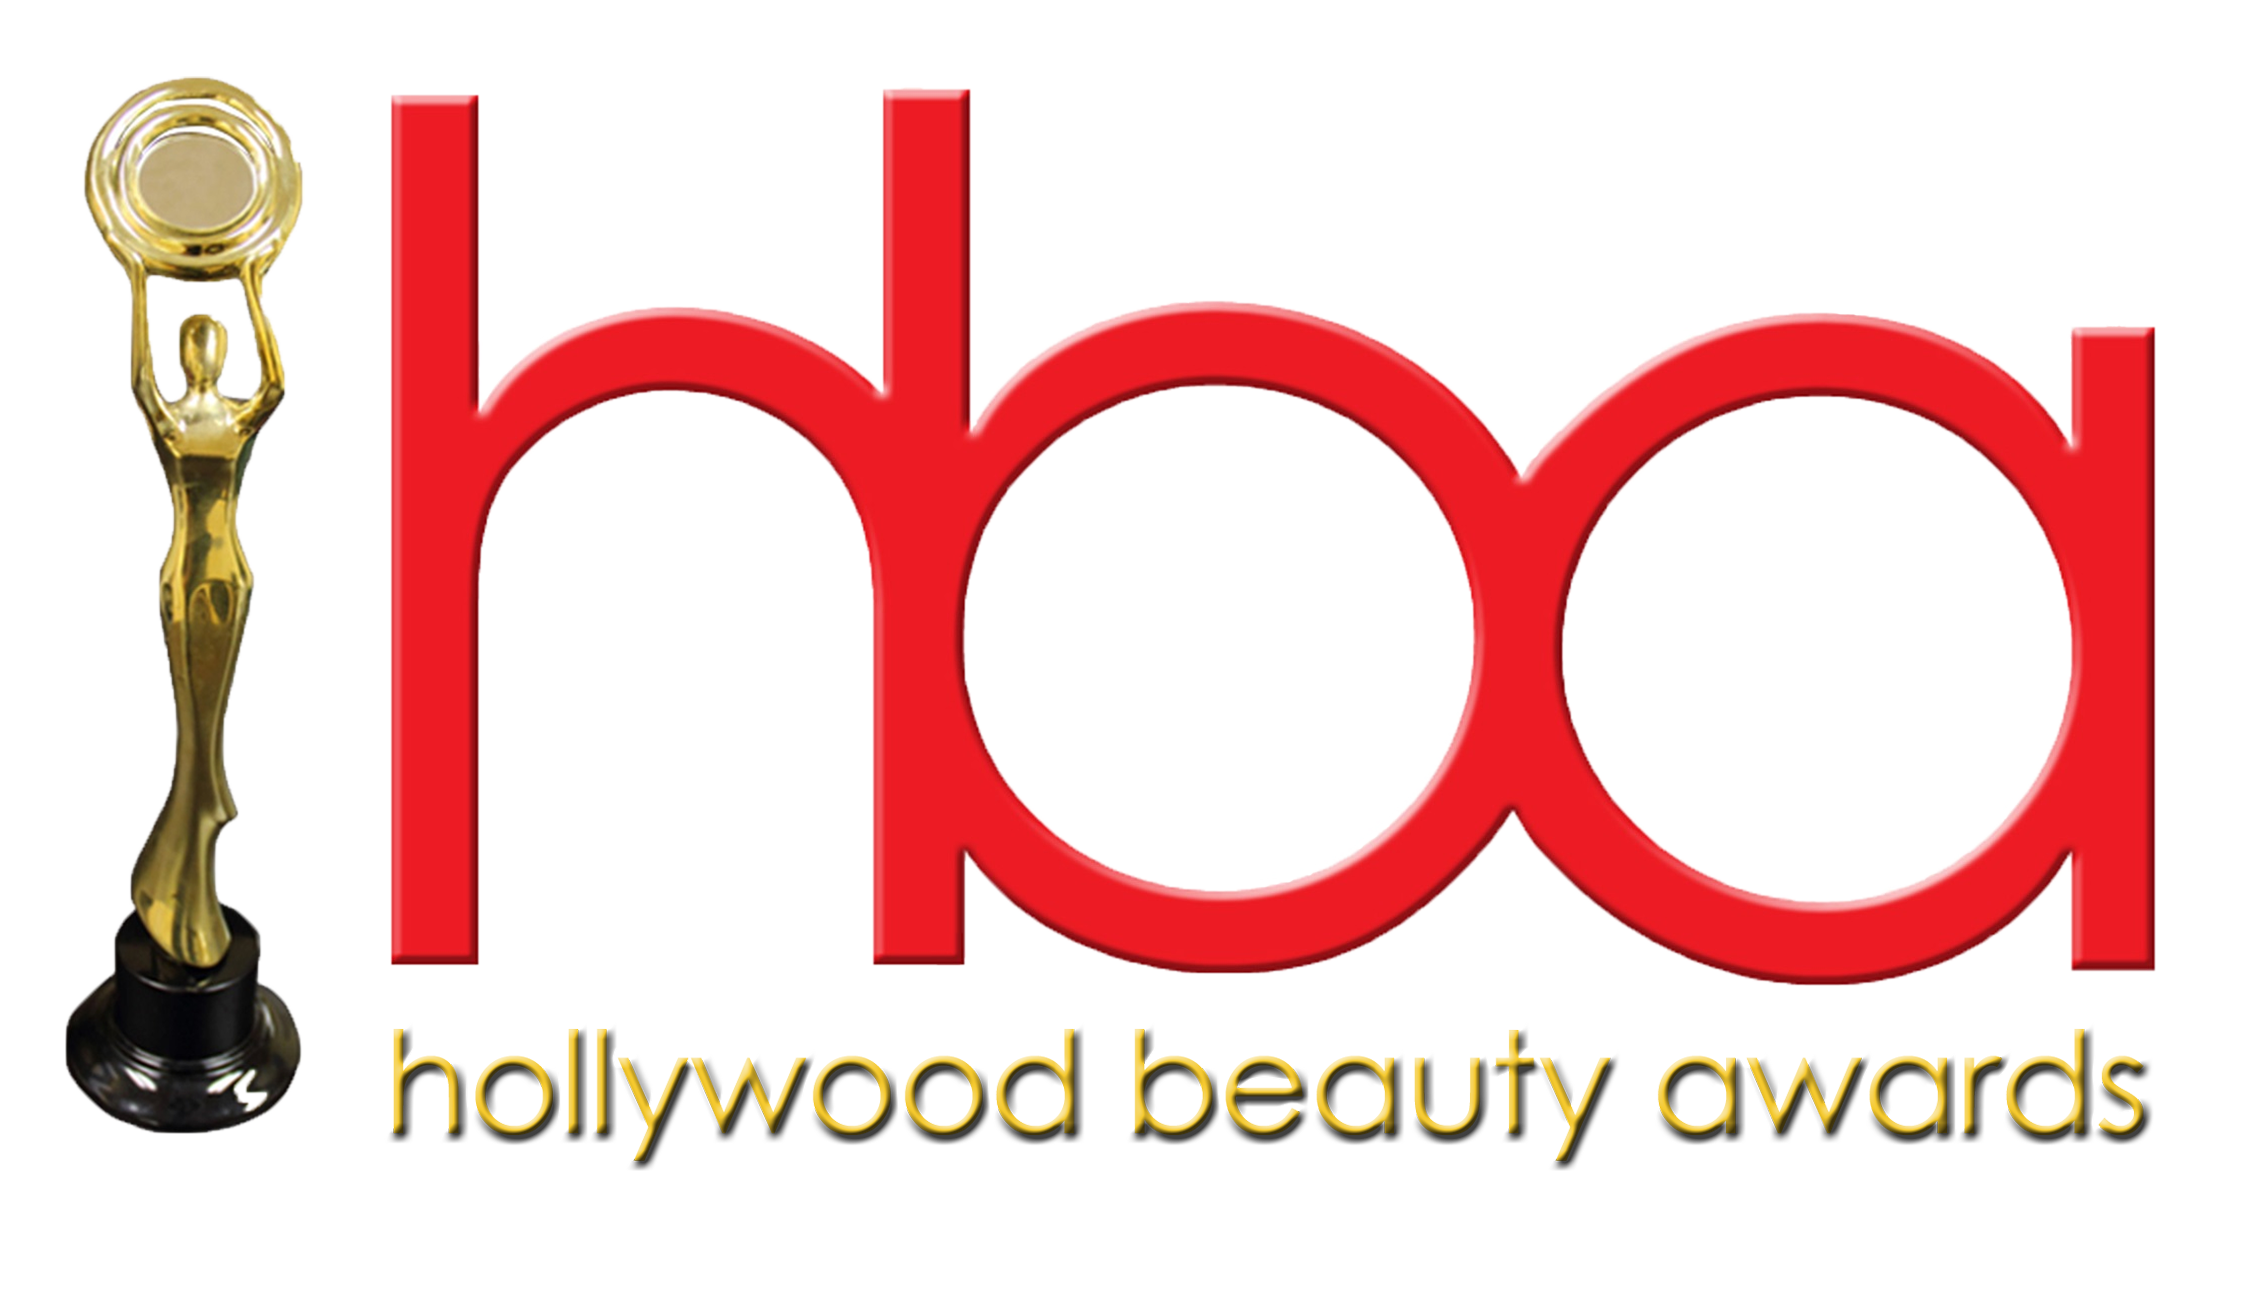 Hollywood Beauty Awards Announce 2020 Honorees & Nominees